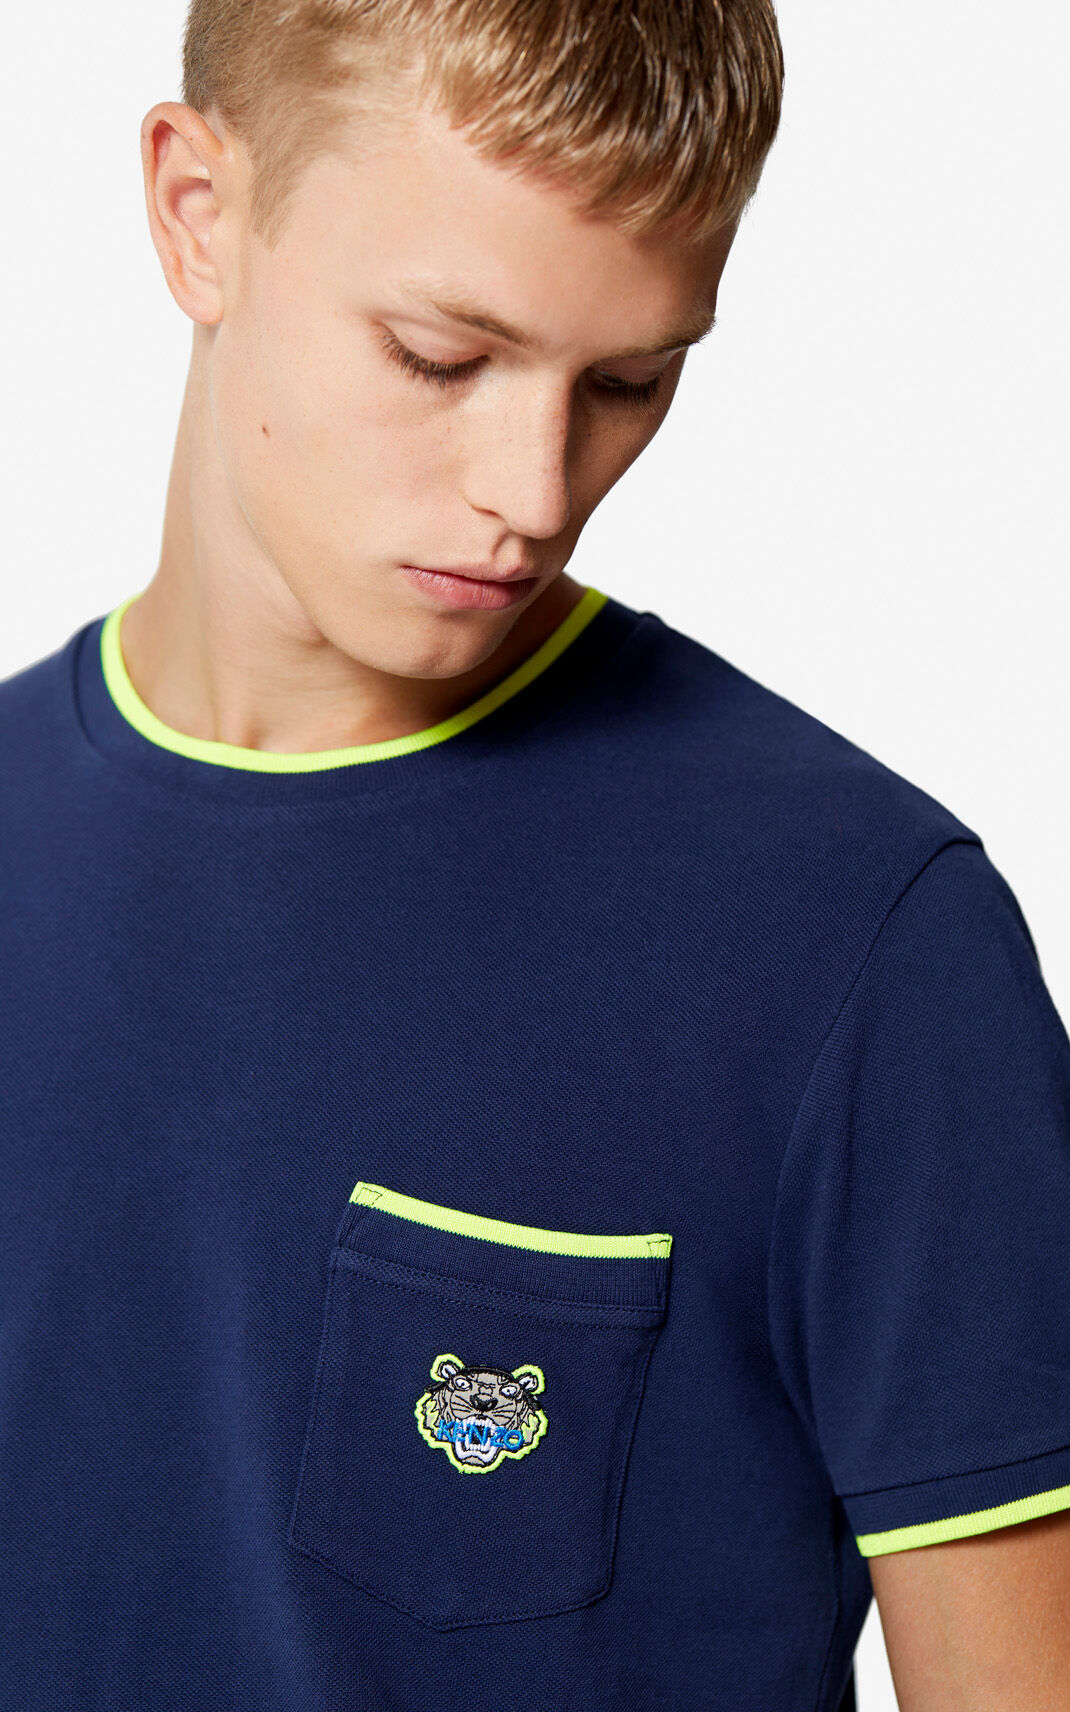 INK Tiger Pocket T-shirt for men KENZO